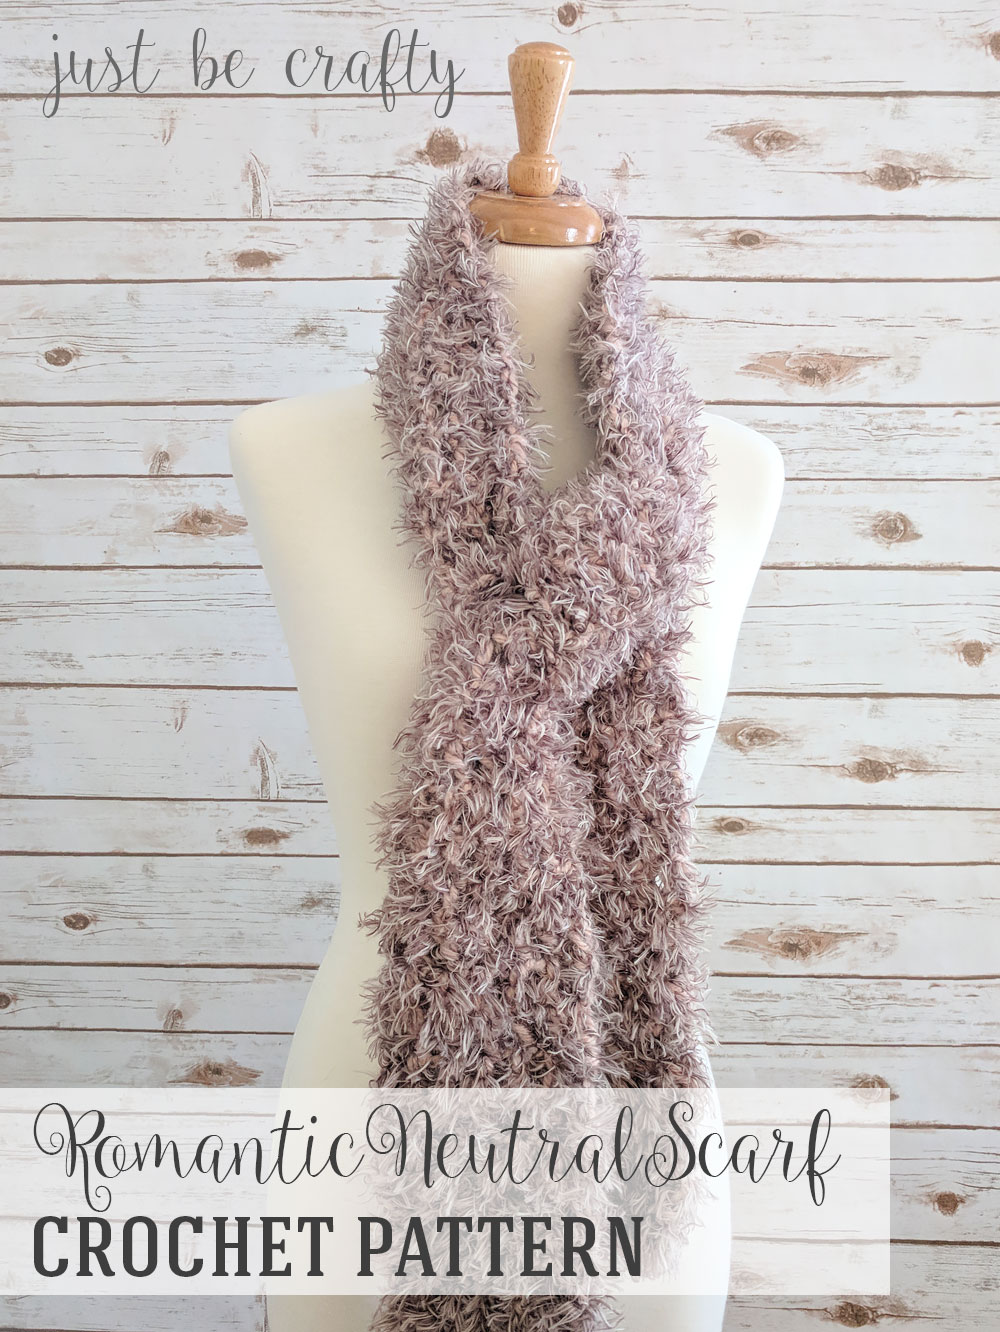 Romantic Neutral Scarf Pattern - Free Crochet Pattern by Just Be Crafty